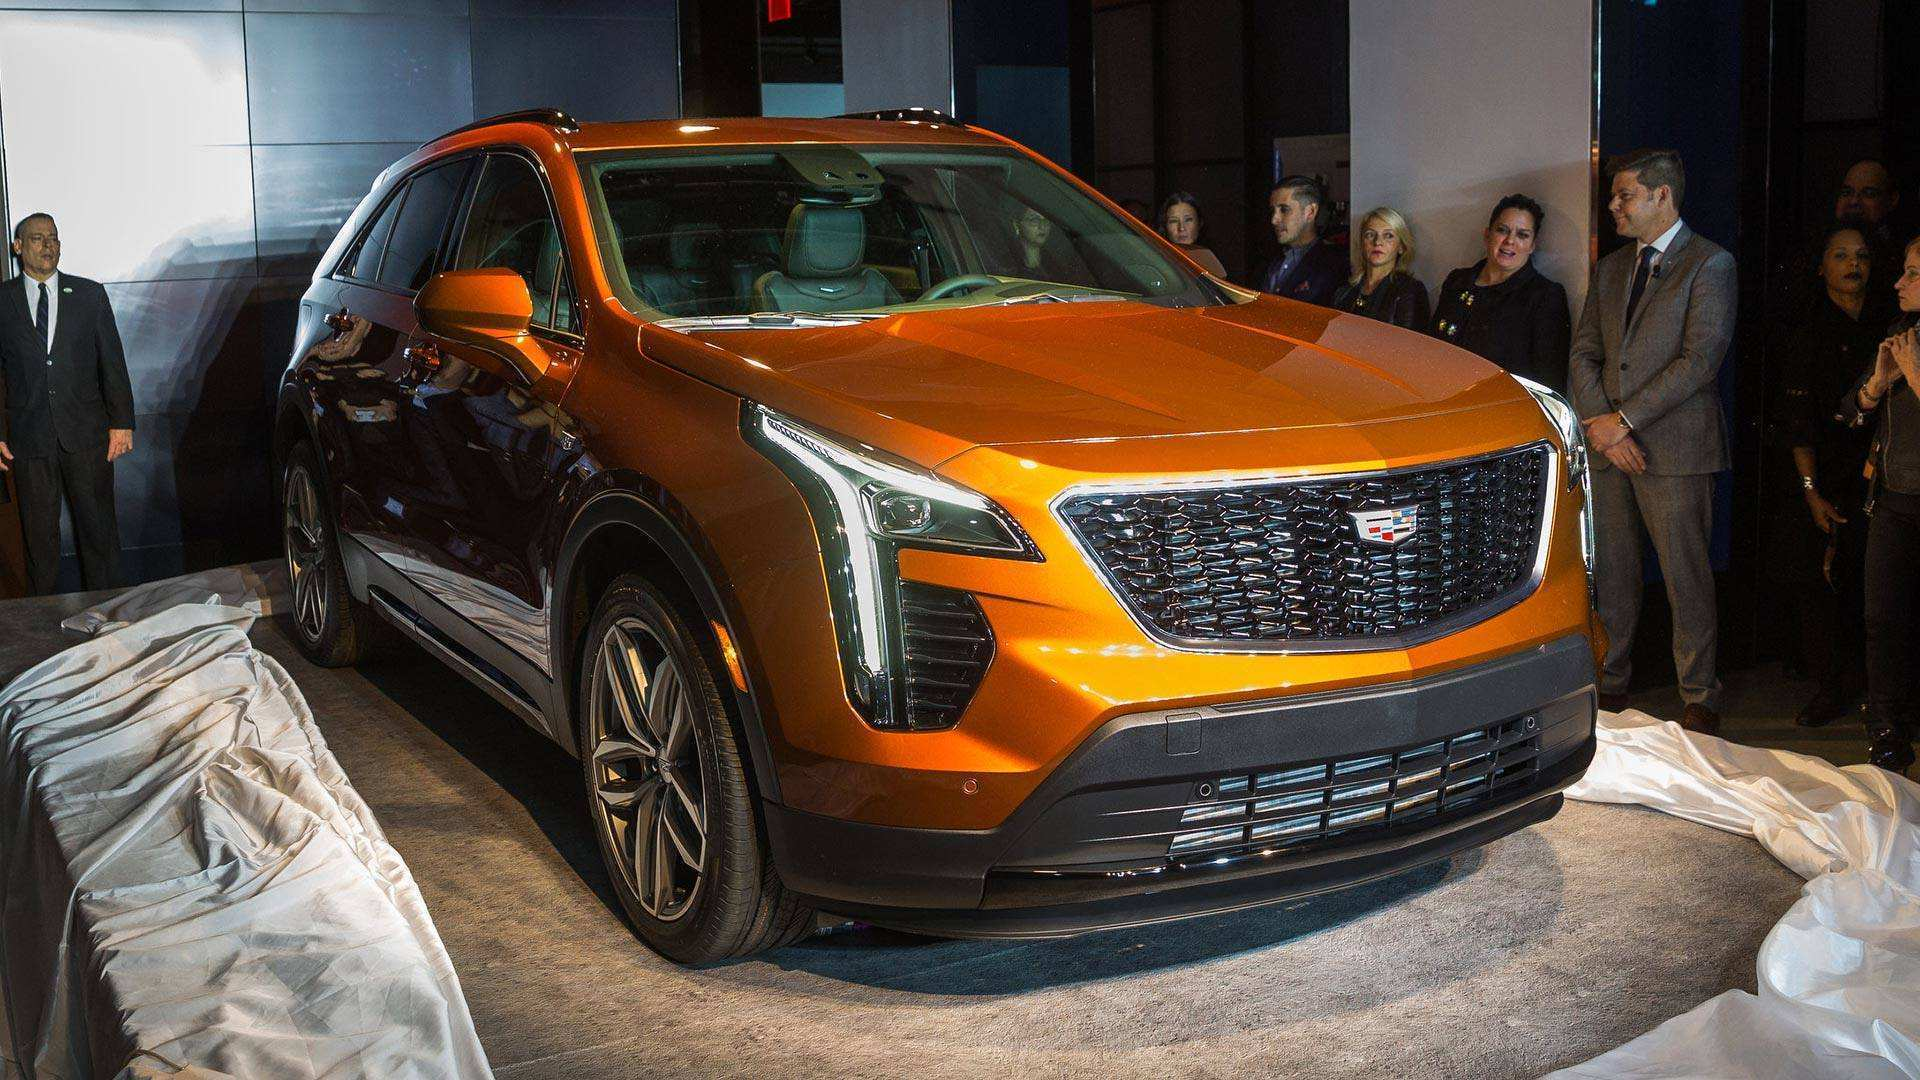 21 All New 2019 Cadillac Flagship Reviews by 2019 Cadillac Flagship